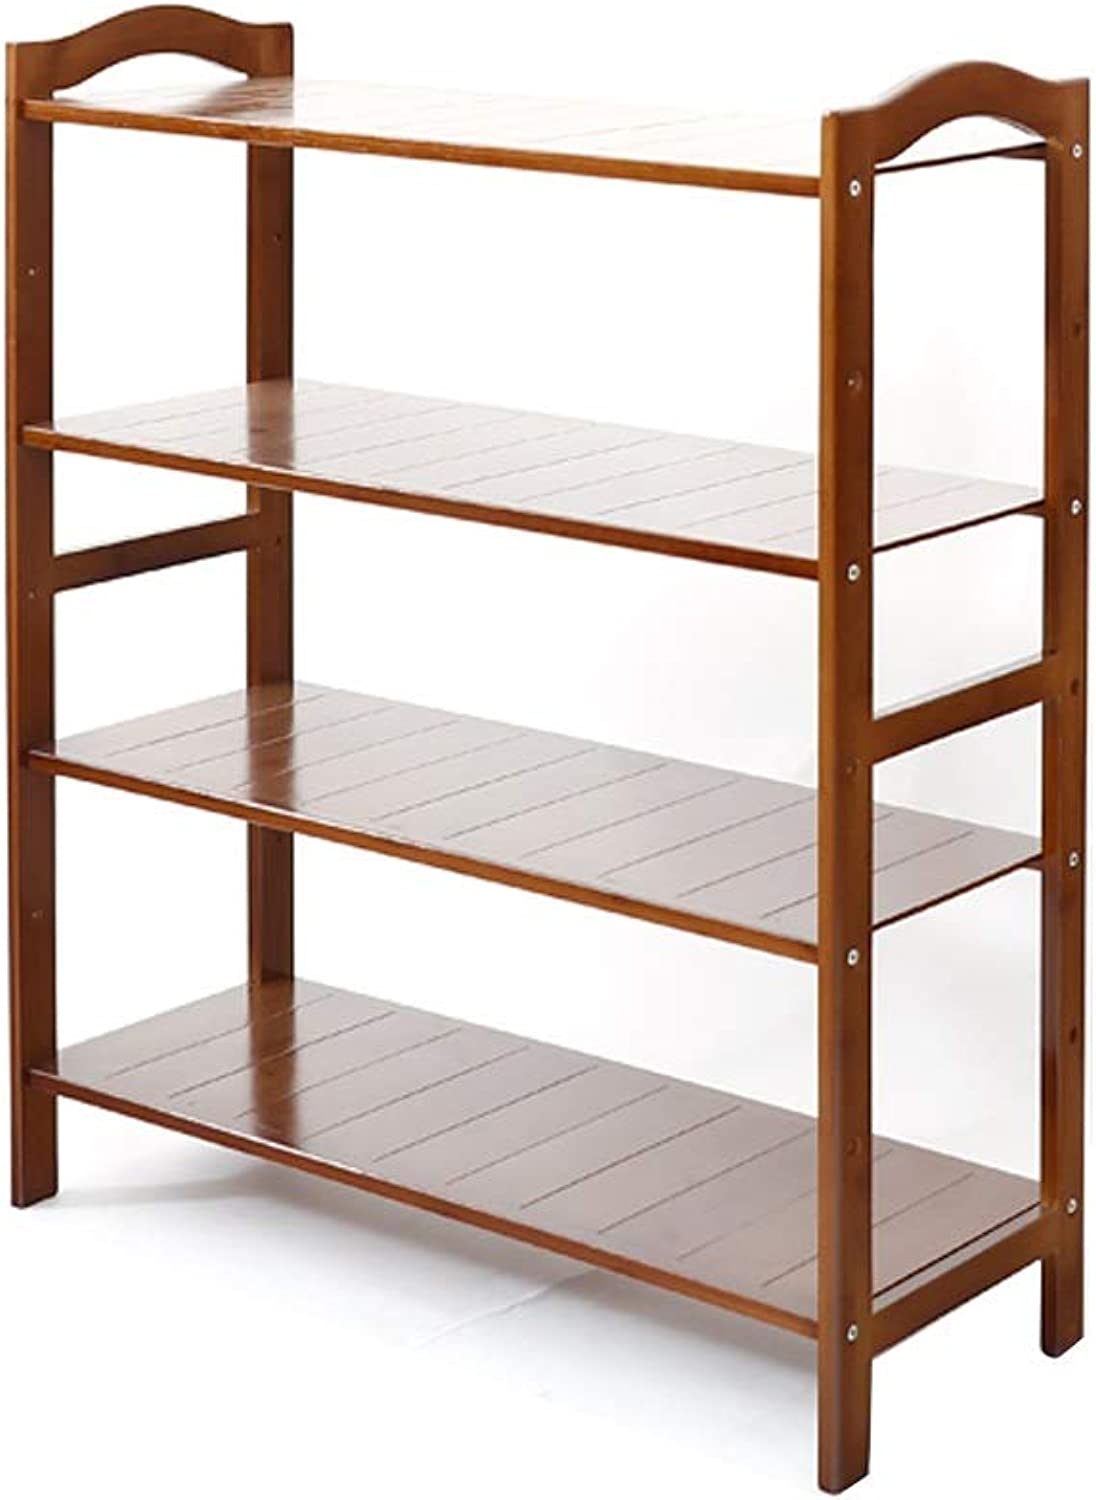 DR shoes Rack Bamboo shoes Rack - 3 4 5 Layer Arc Handle Simple Inssizetion Environmental Predection Material Dust Simple shoes Rack Storage Shelf (Size   49x26x80cm)